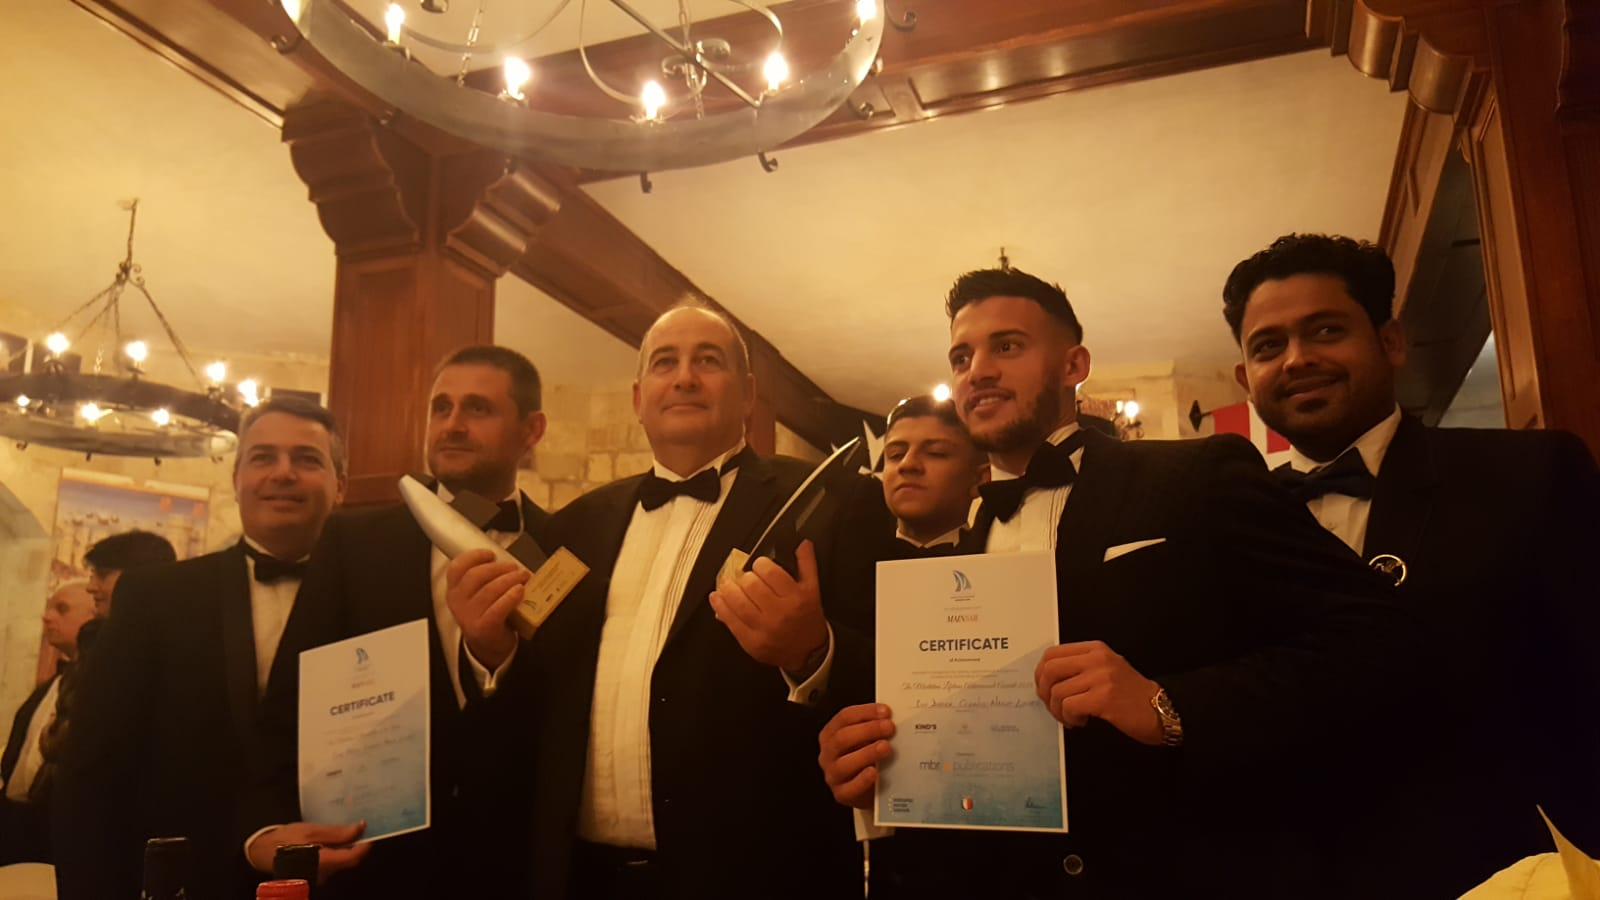 The Malta International Boat and Yachting Awards 2017 Image 1